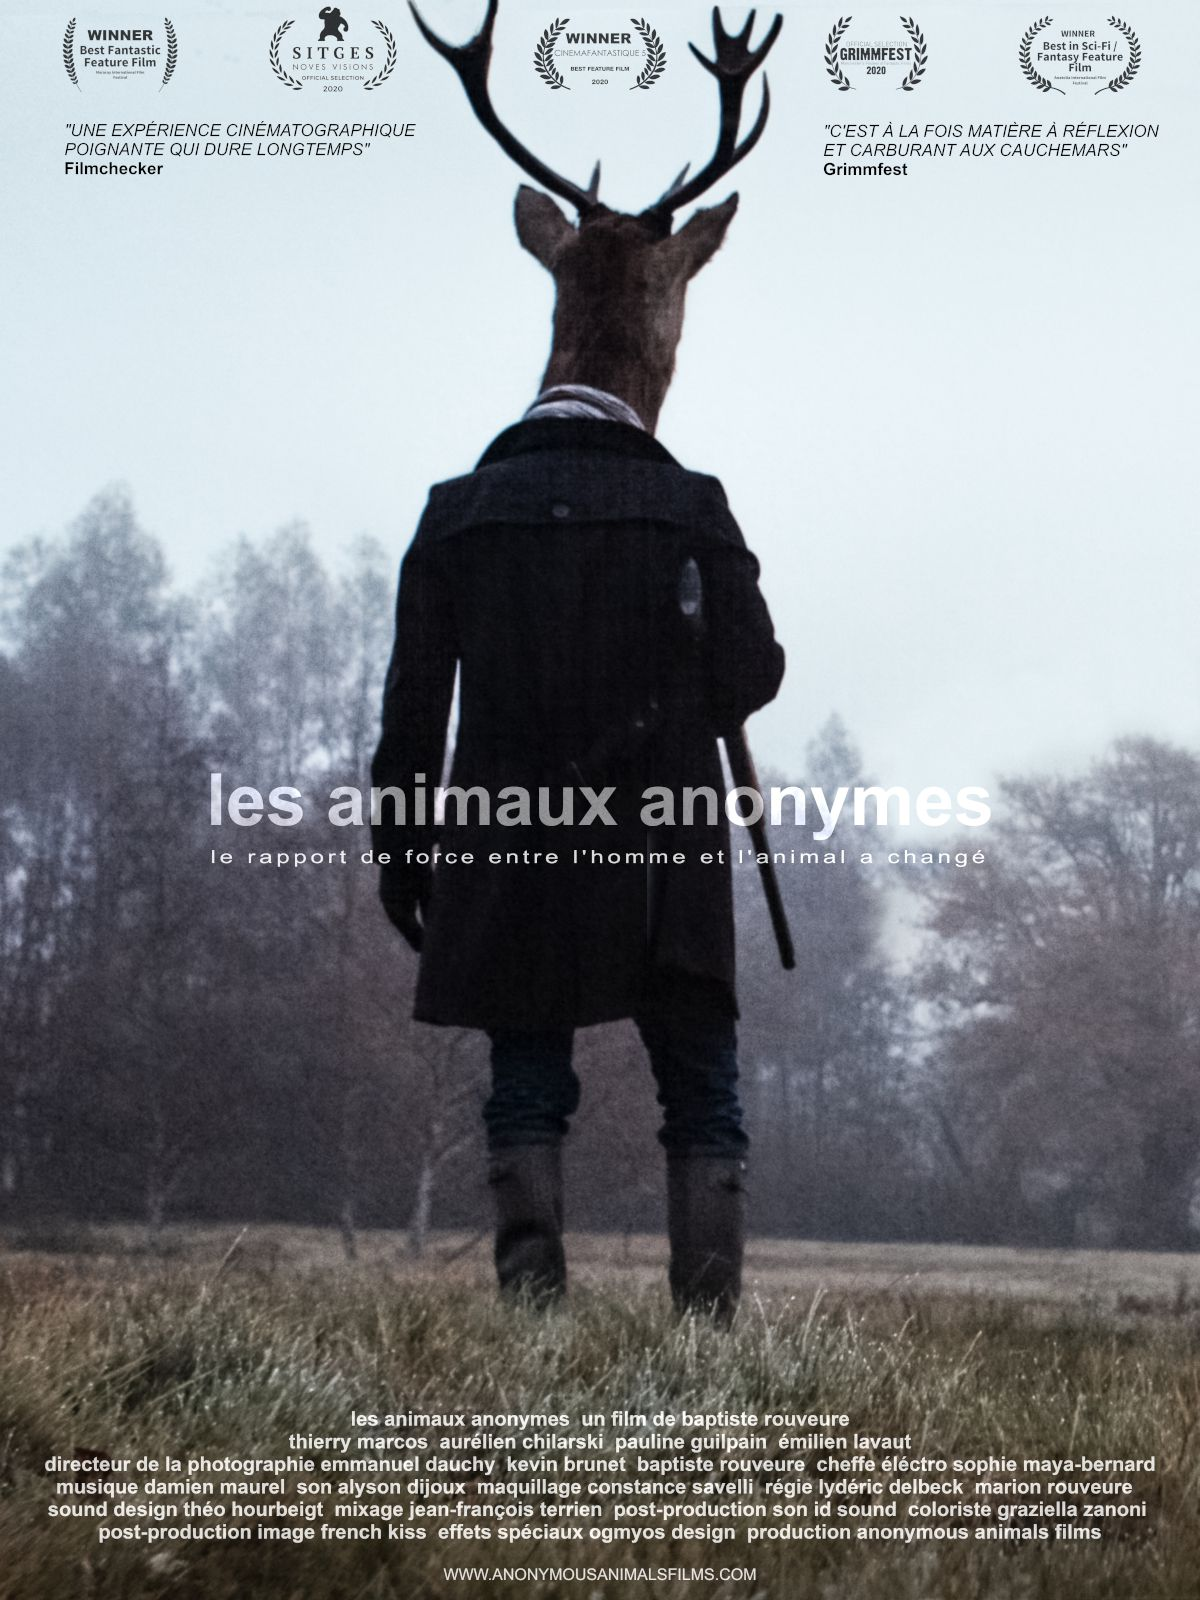 Voir Film Les Animaux anonymes - Film (2021) streaming VF gratuit complet